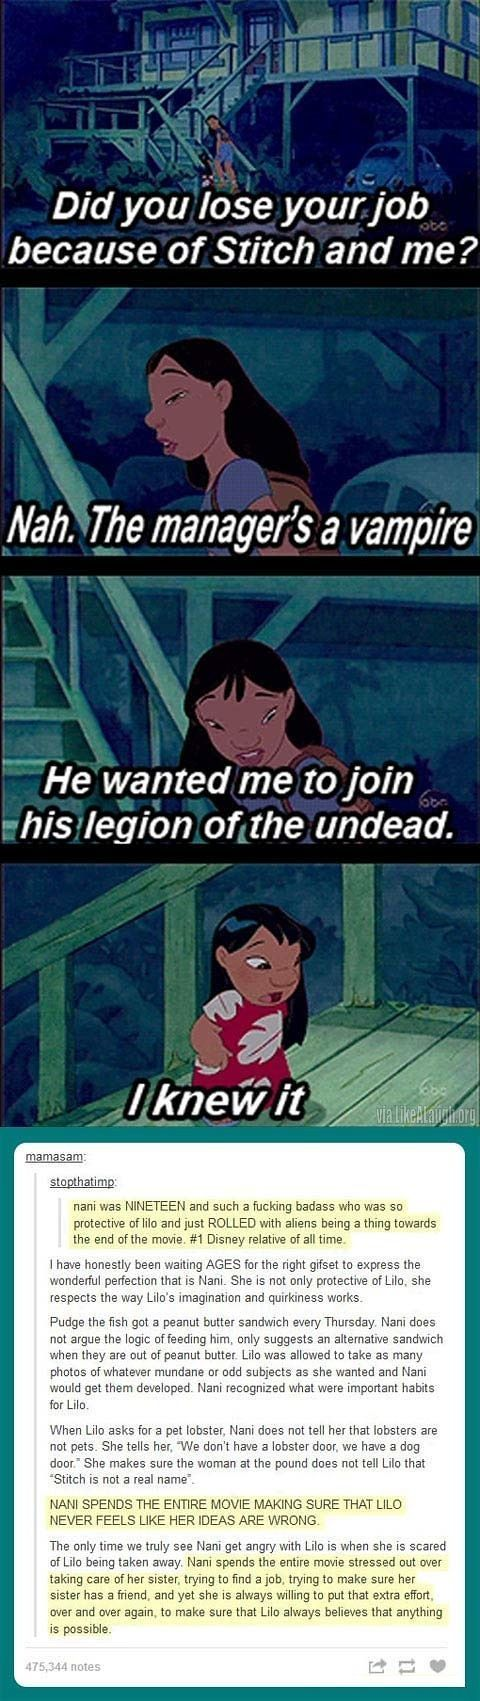 Okay so I didn't realize there was a tumblr post under this but wow. Lilo does have a wild and wonderful imagination and Nani is super awesome to support it. Honestly, the way Lilo thinks is the same way I think